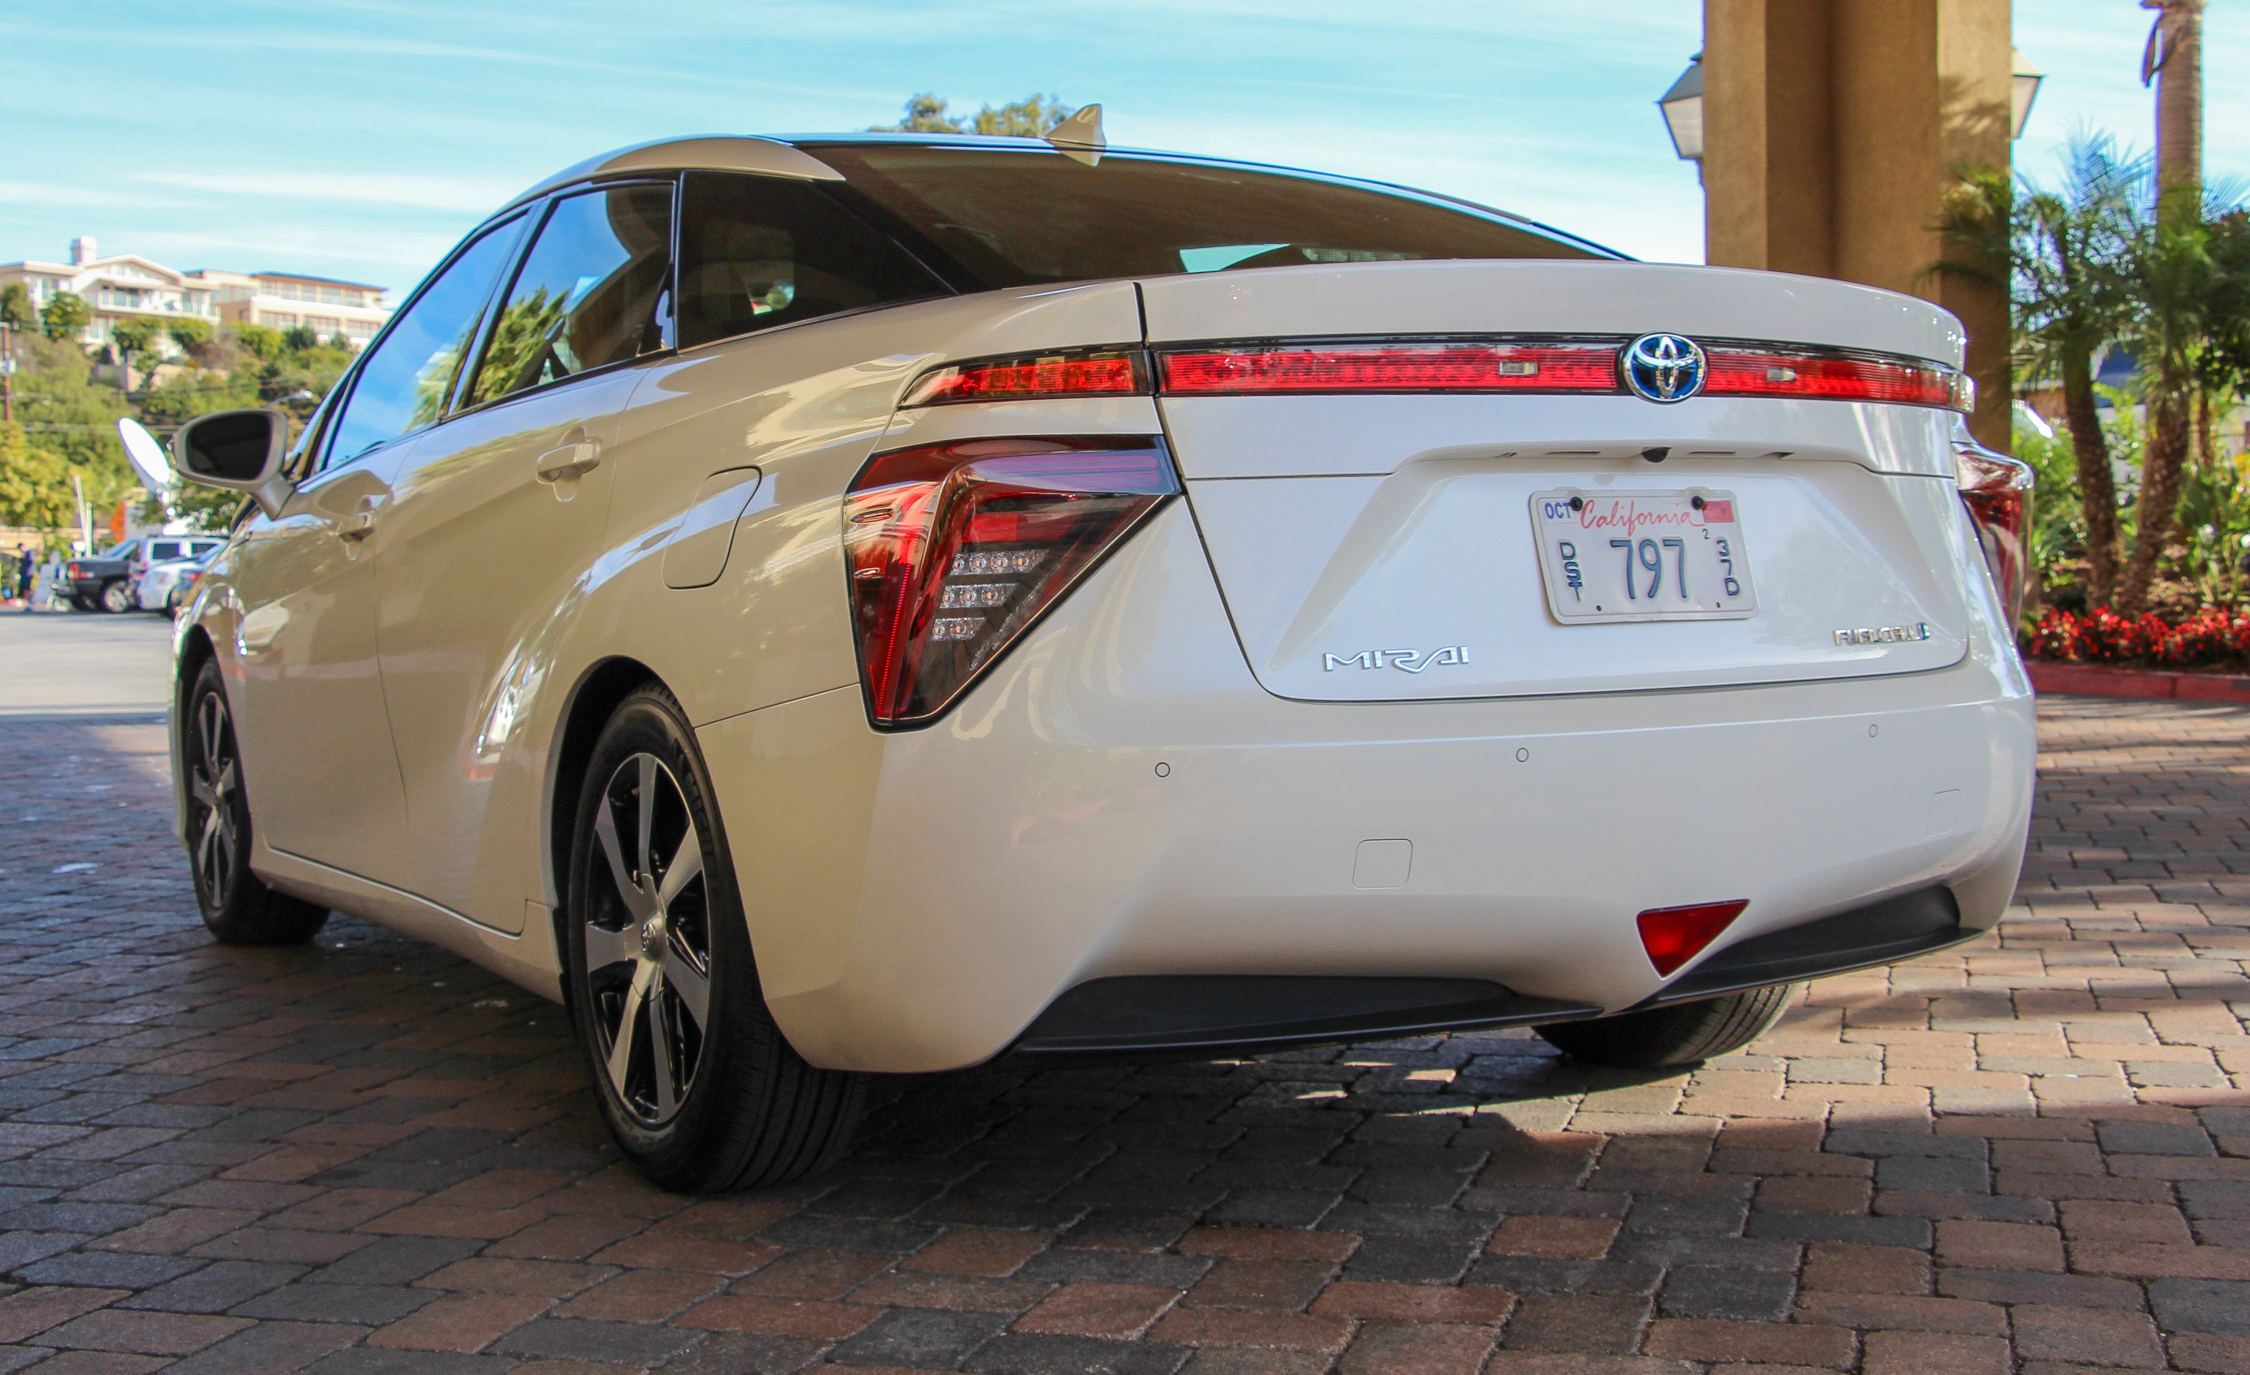 2016 Toyota Mirai White Exterior Rear And Side (View 6 of 18)